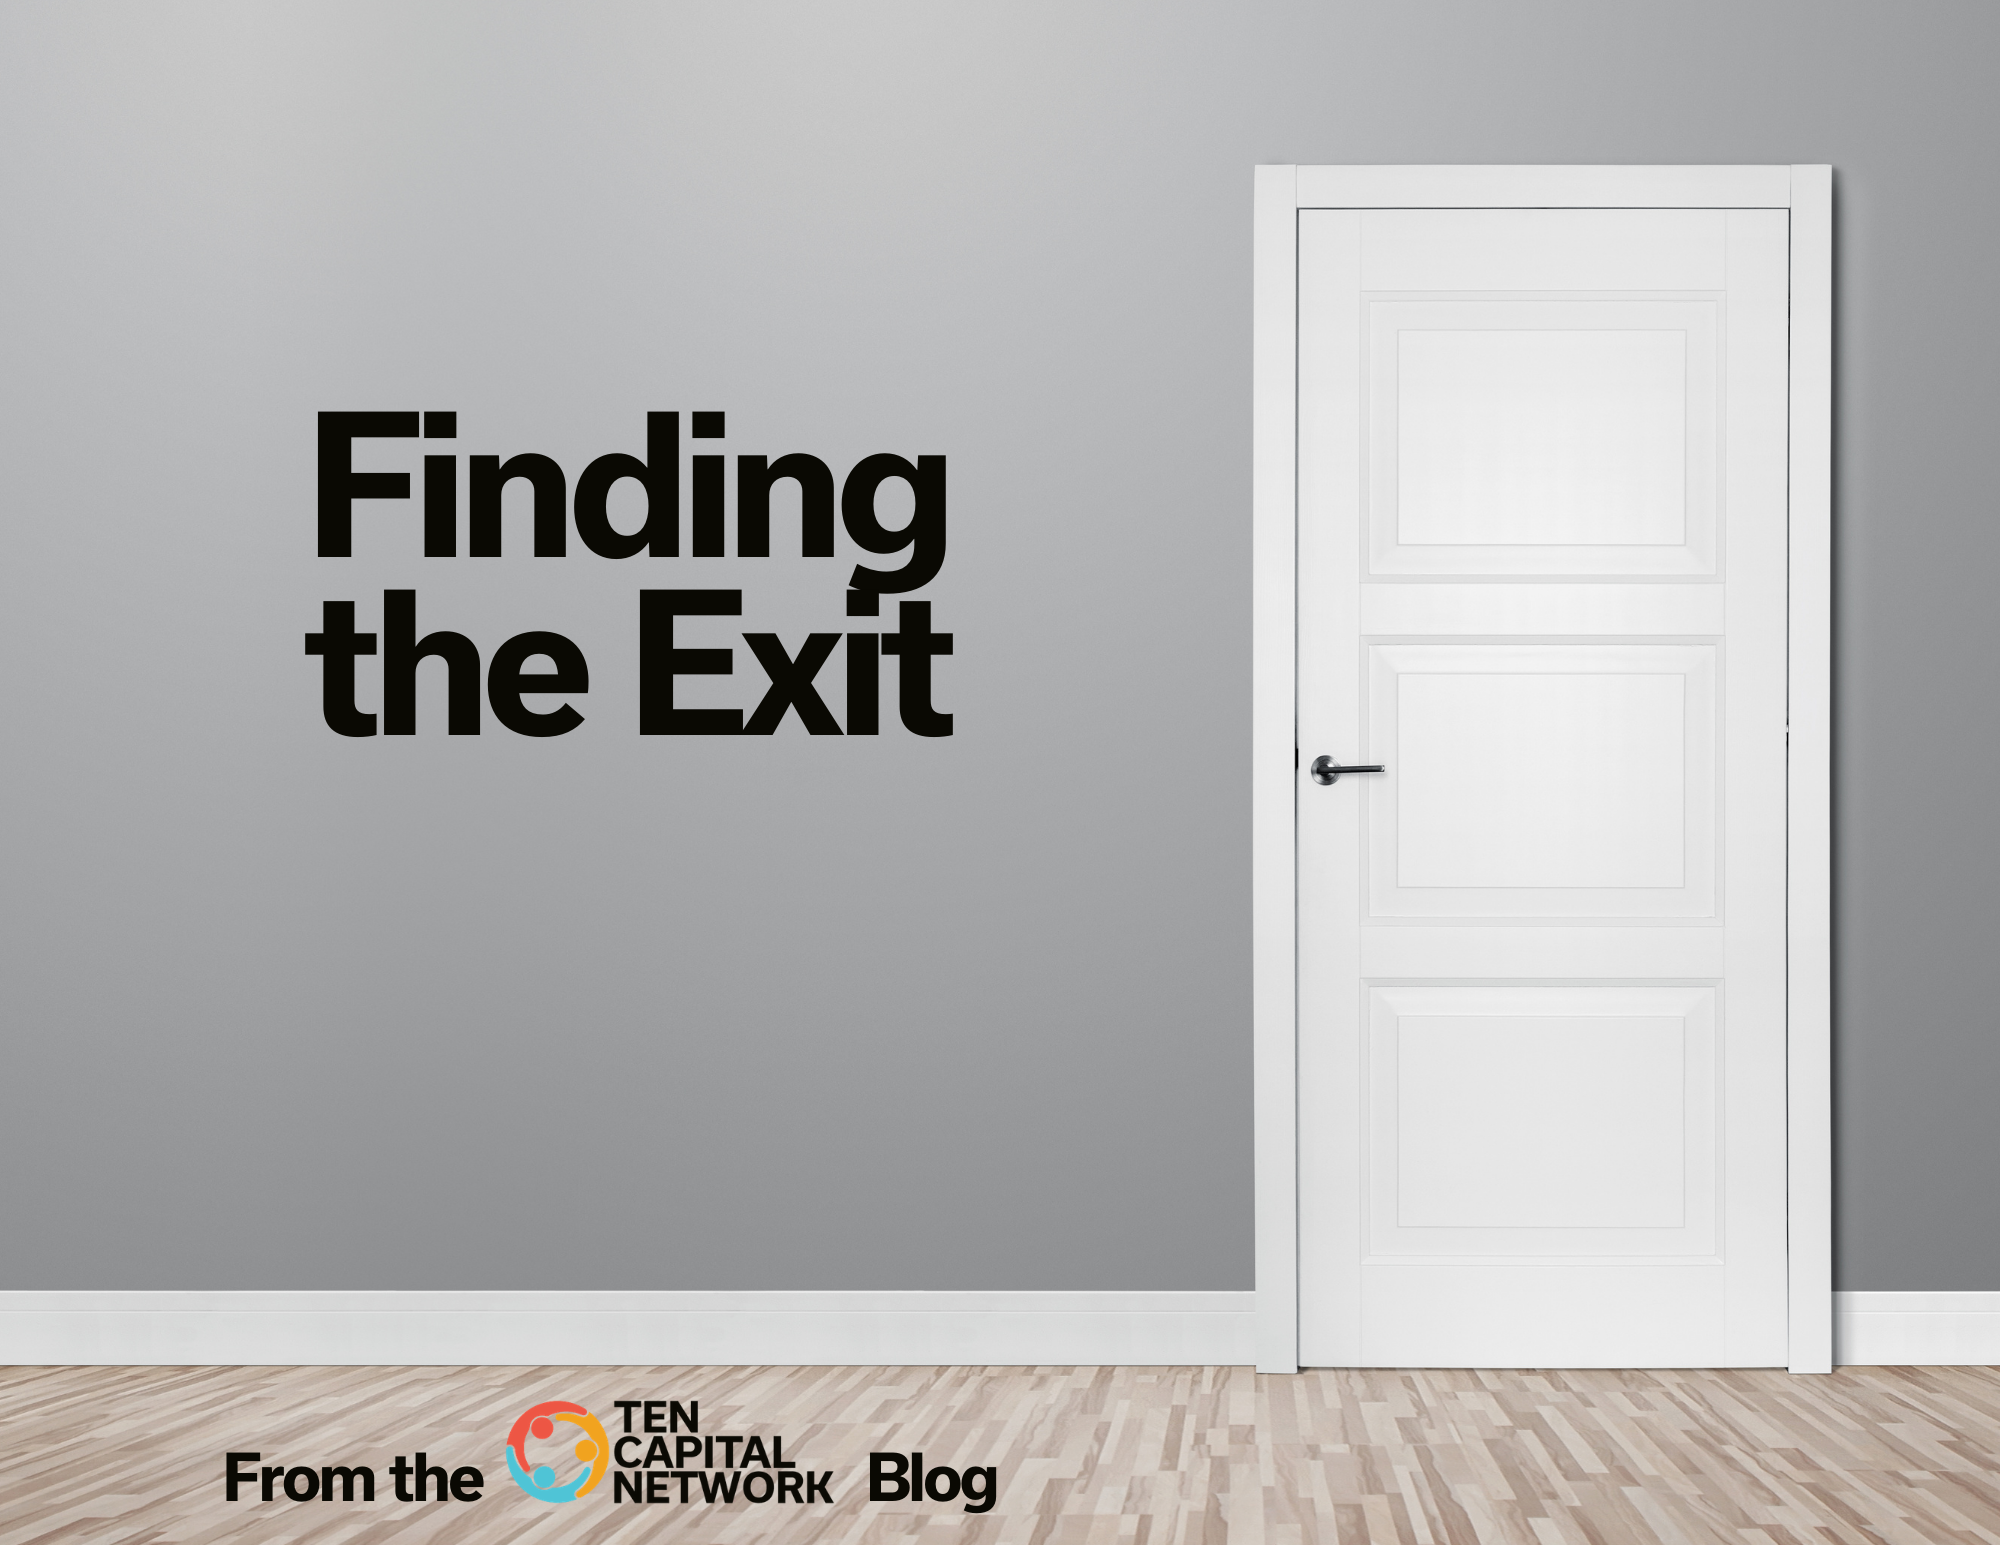 Finding the Exit